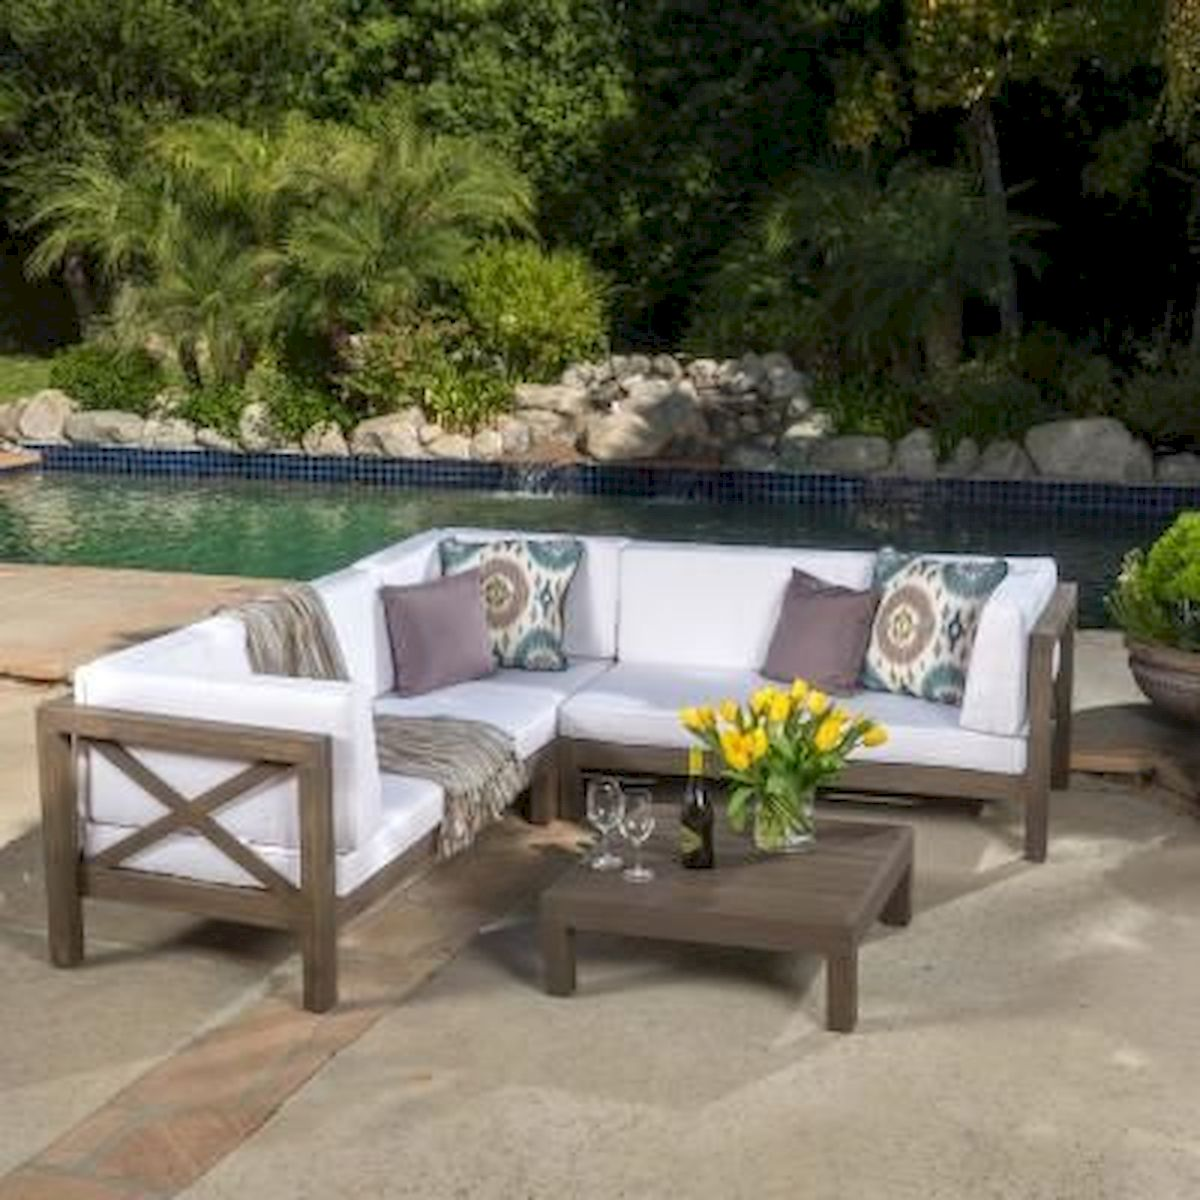 40 Awesome DIY Outdoor Bench Ideas For Backyard And Front Yard Garden (3)